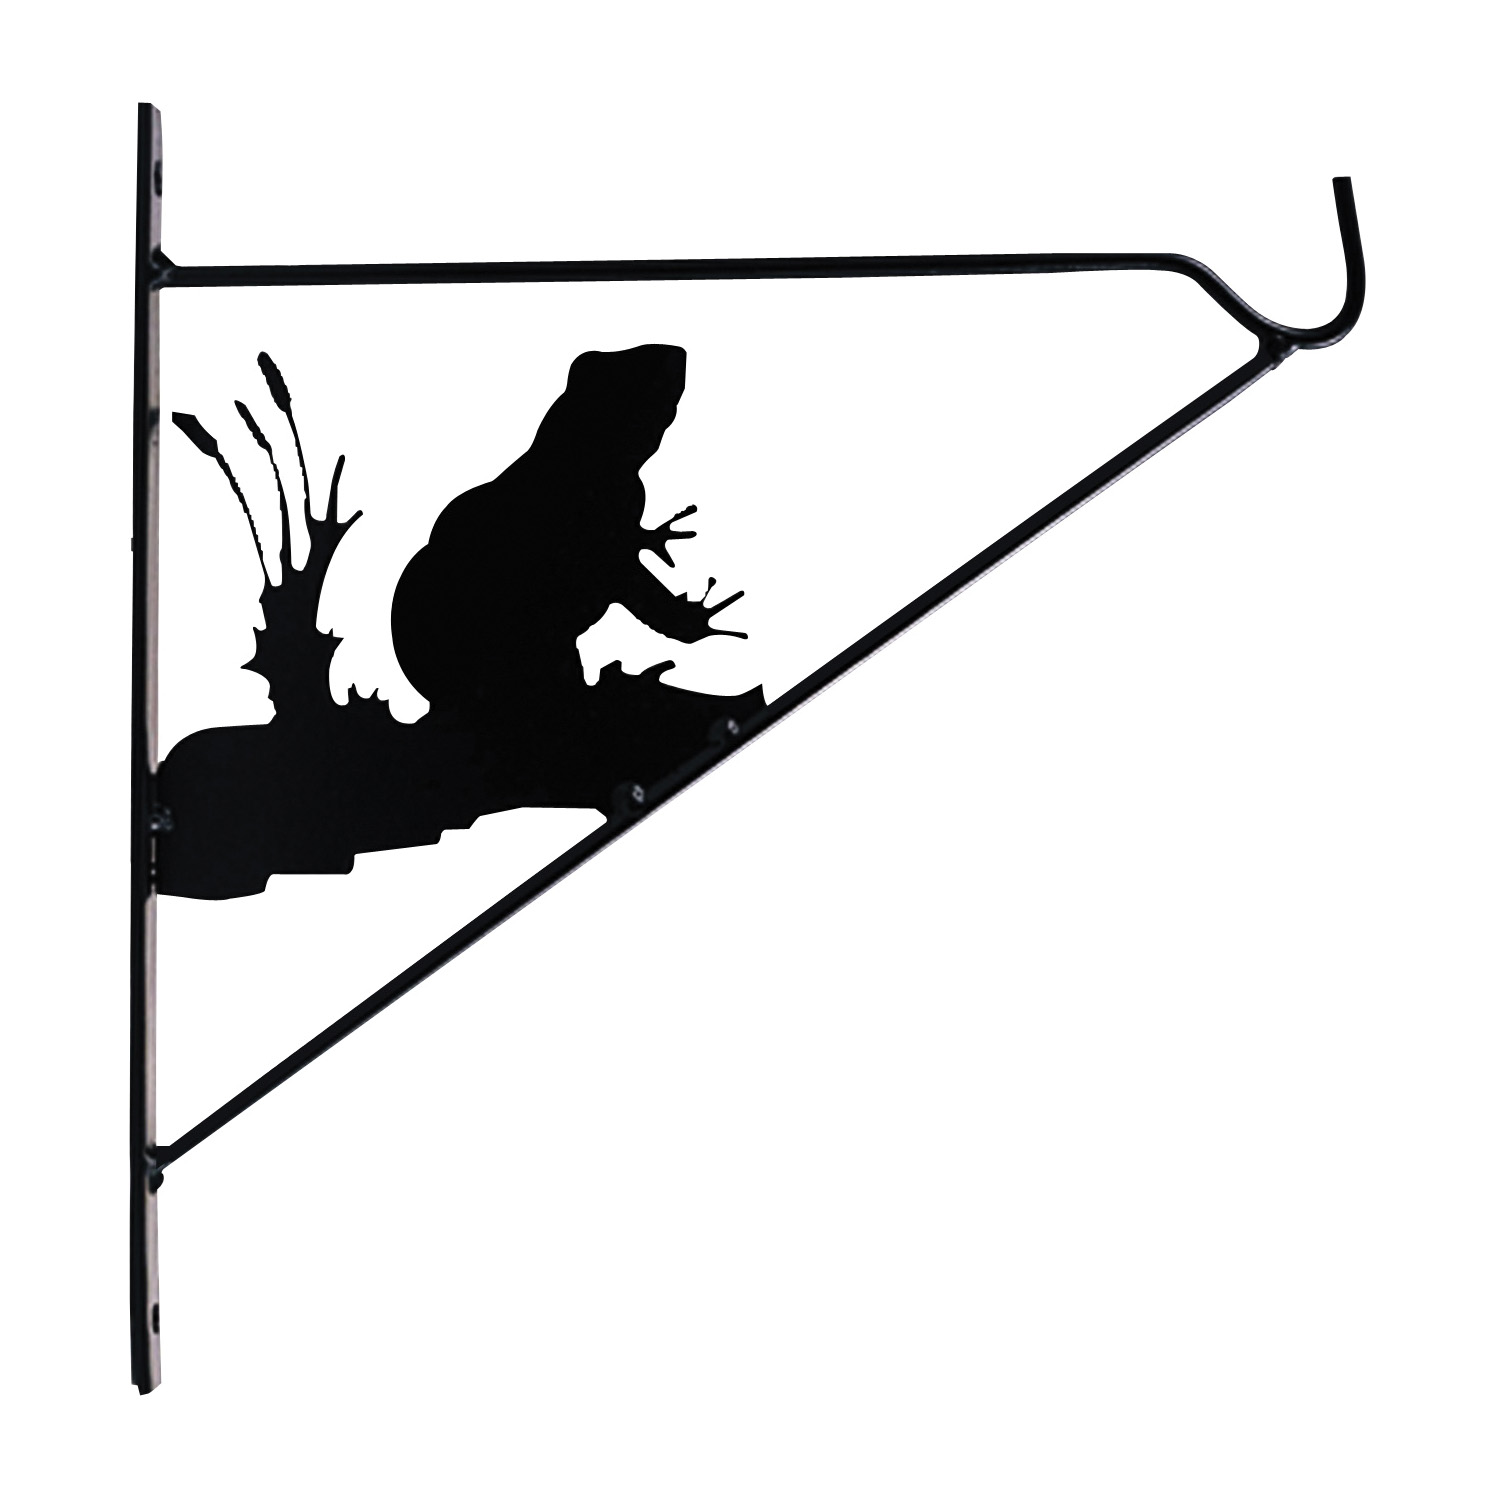 Picture of Landscapers Select GF-3059 Plant Bracket, 11 in L, Steel, Black, Matte Black, Wall Mount Mounting